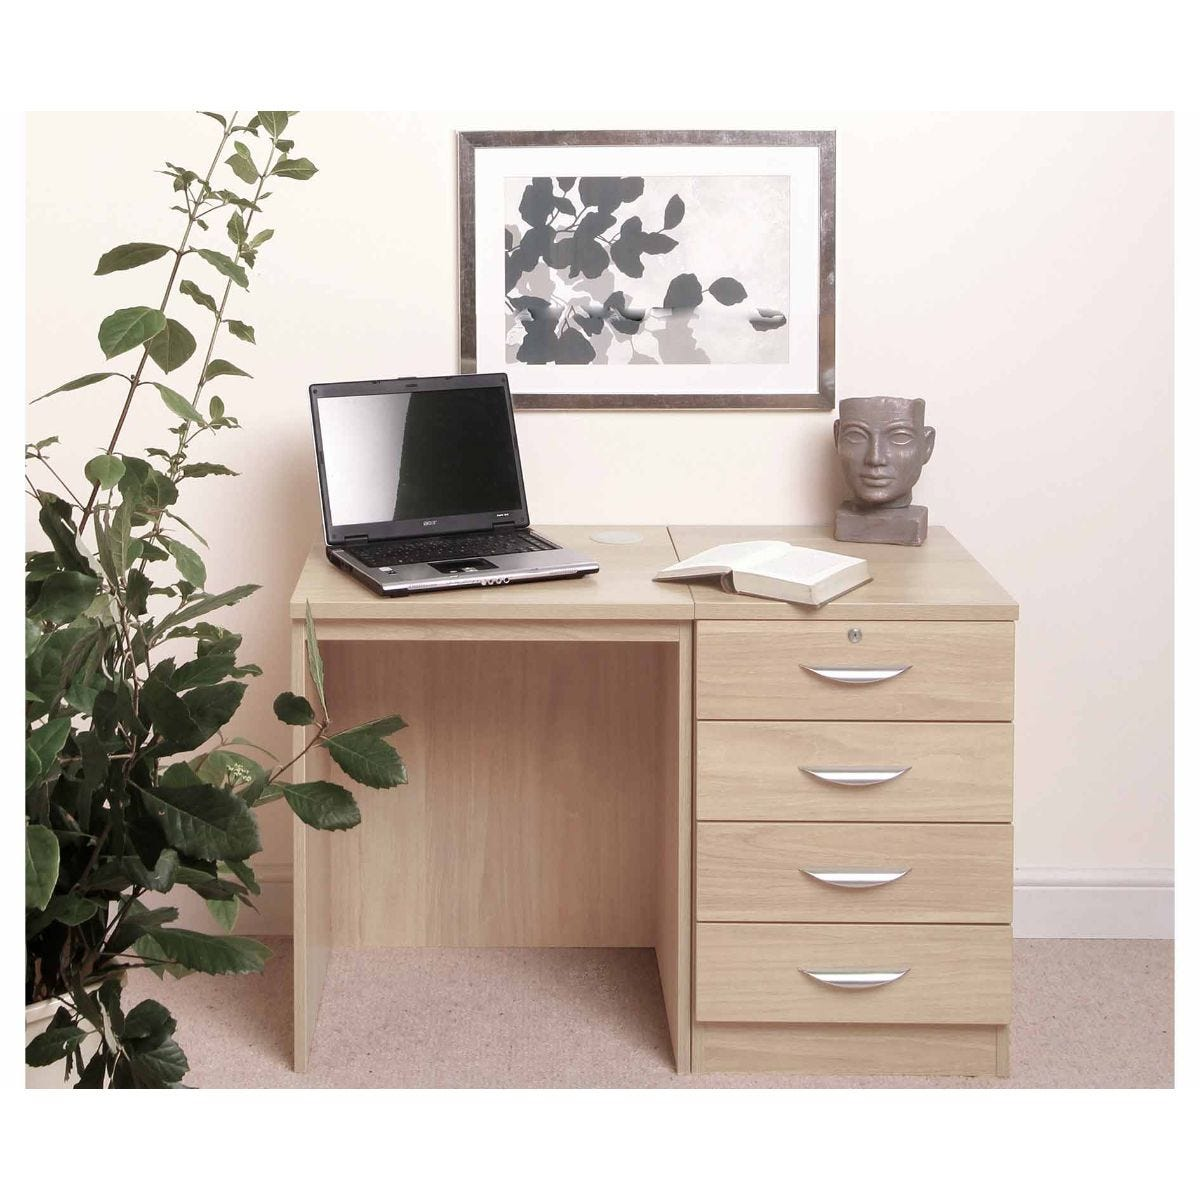 R White Home Office Desk Set with Four Drawers, Beech